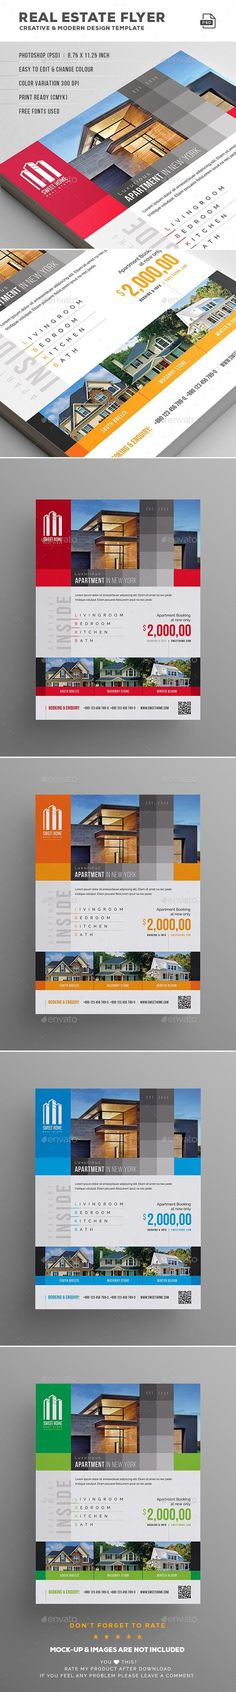 FEATURES:Easy customizable and editable 300 DPI CMYK Print Ready! x with bleed settings) 100 Layered and Full Editable 04 PSD Files with different color variations Help Guide Included Print Ready Format Images are not included in the down Real Estate Flyers, Real Estate Marketing, Real Estate Flyer Template, Luxury Portfolio, Print Design, Graphic Design, Commerce, Business Inspiration, Print Templates